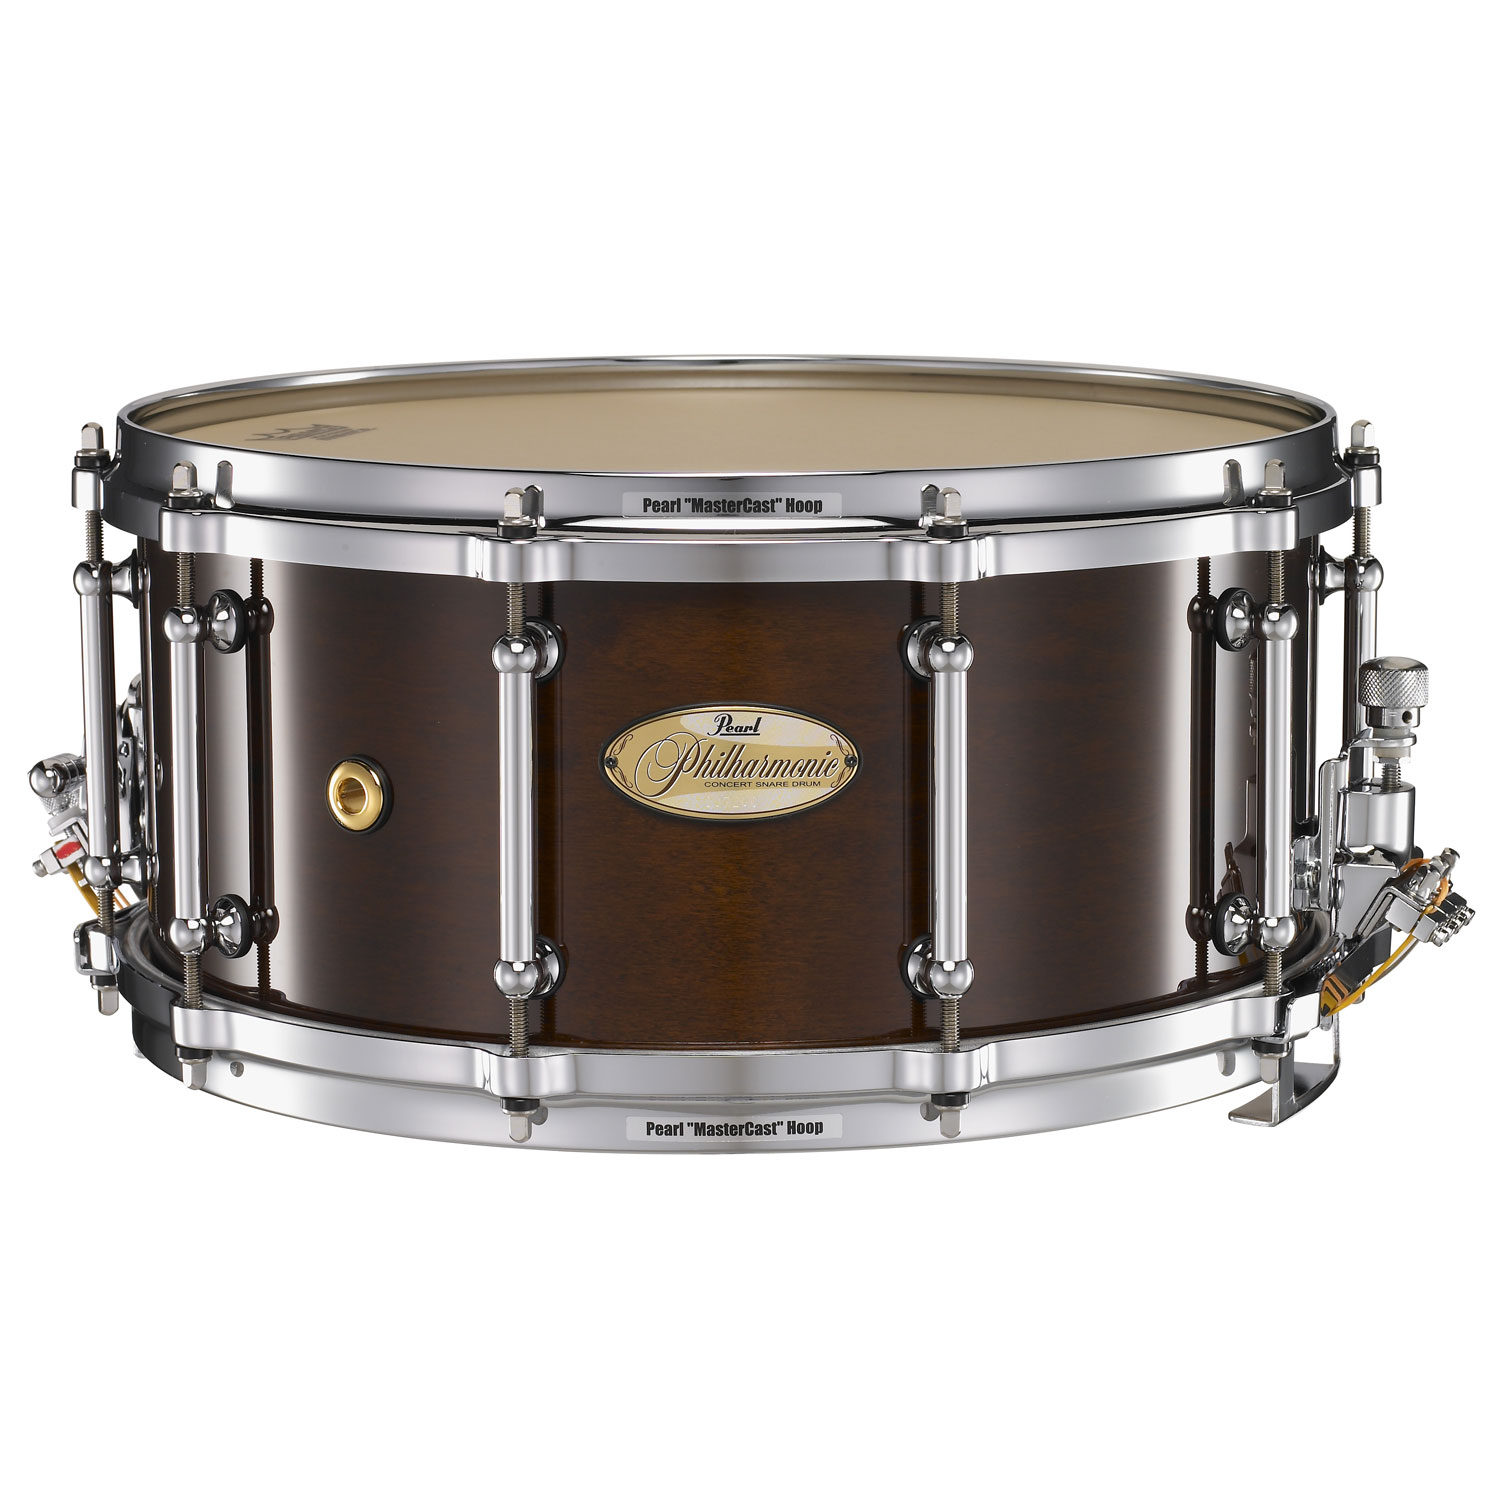 "Pearl 14"" x 6.5"" Philharmonic Solid Maple Concert Snare Drum in High Gloss Walnut Bordeaux"